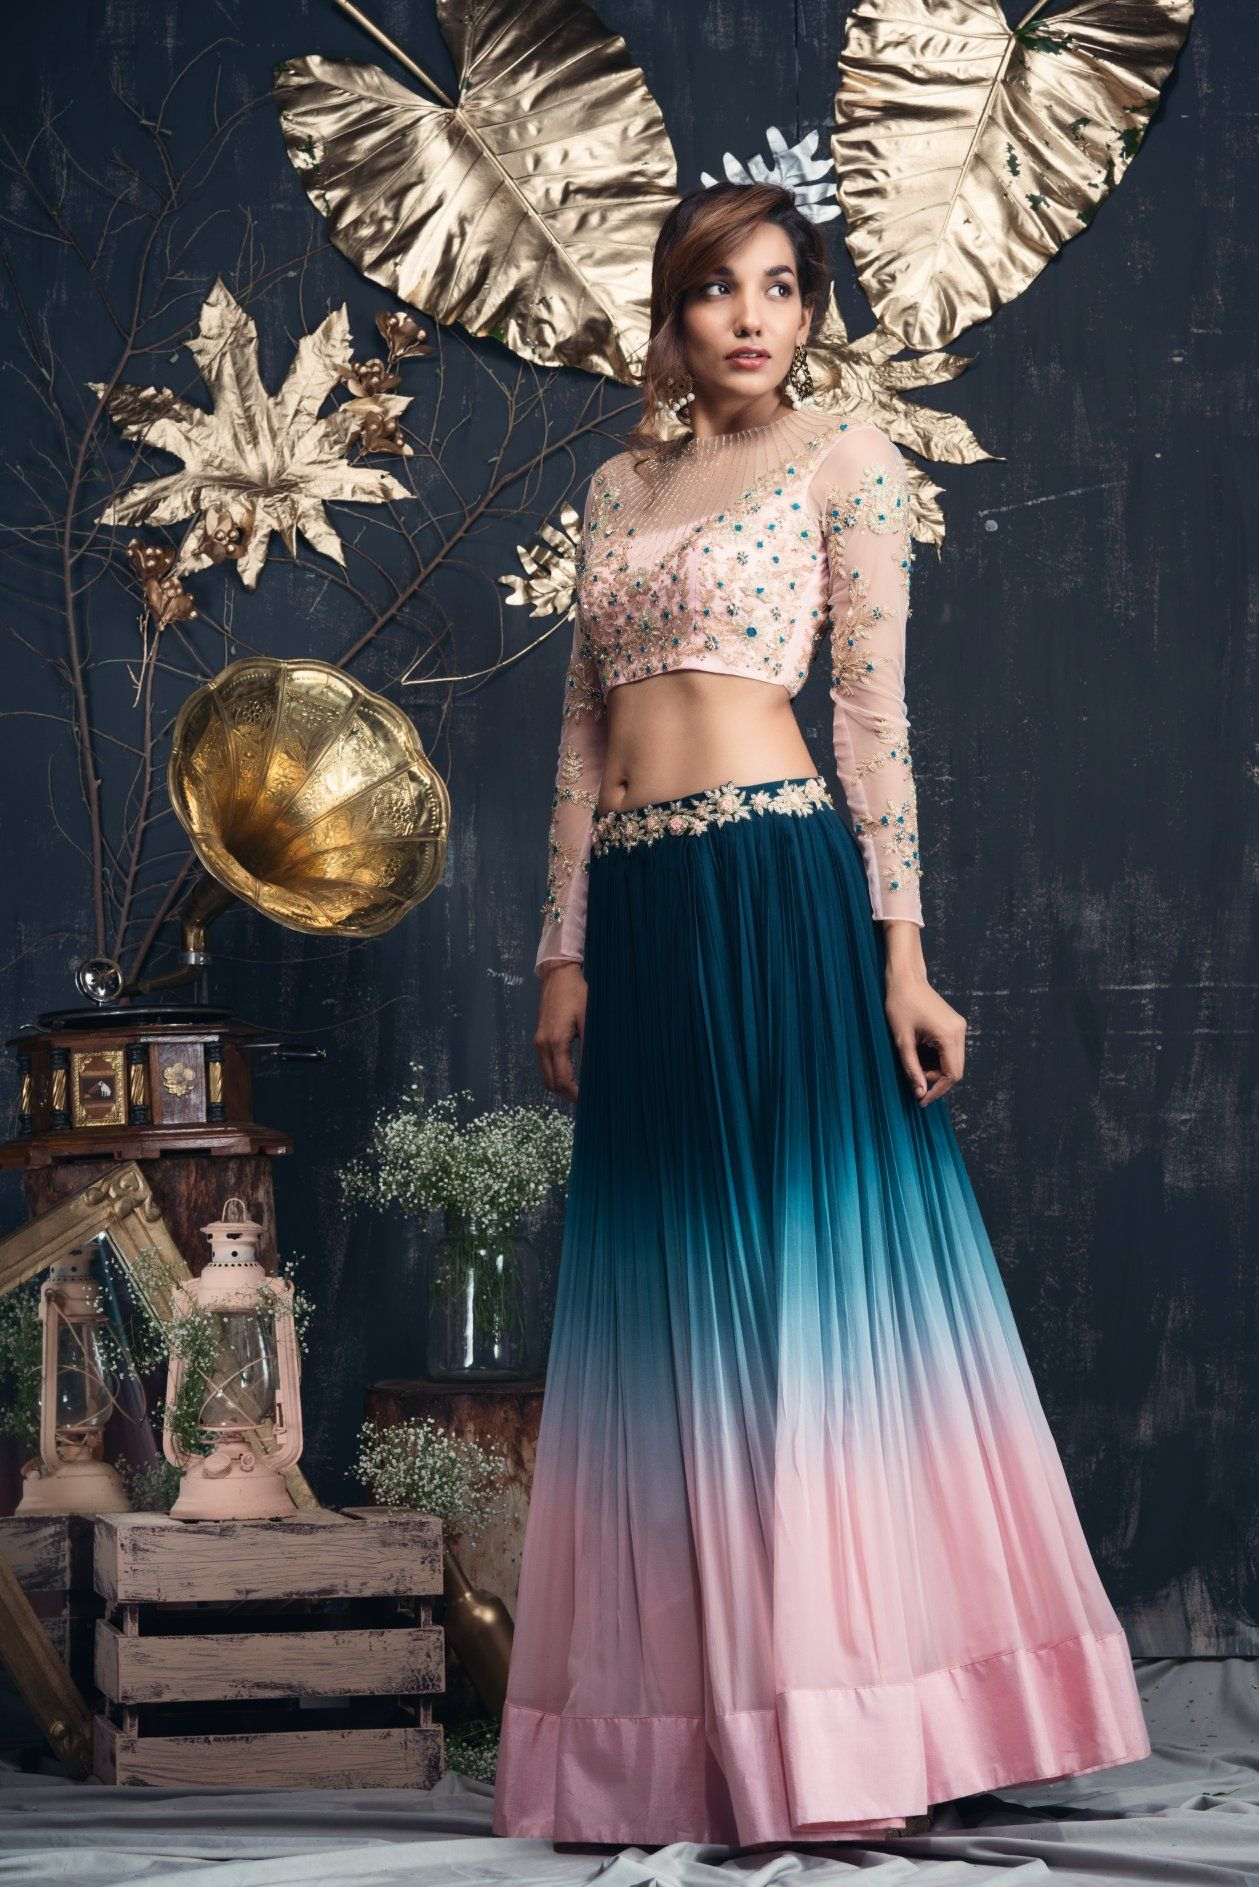 bdd54d054d47 Moonlit Memoirs: Look 6 They can customize the dress as per your  requirement. For more details WhatsApp on 9949944178 or mail at  info@issastudio.com.